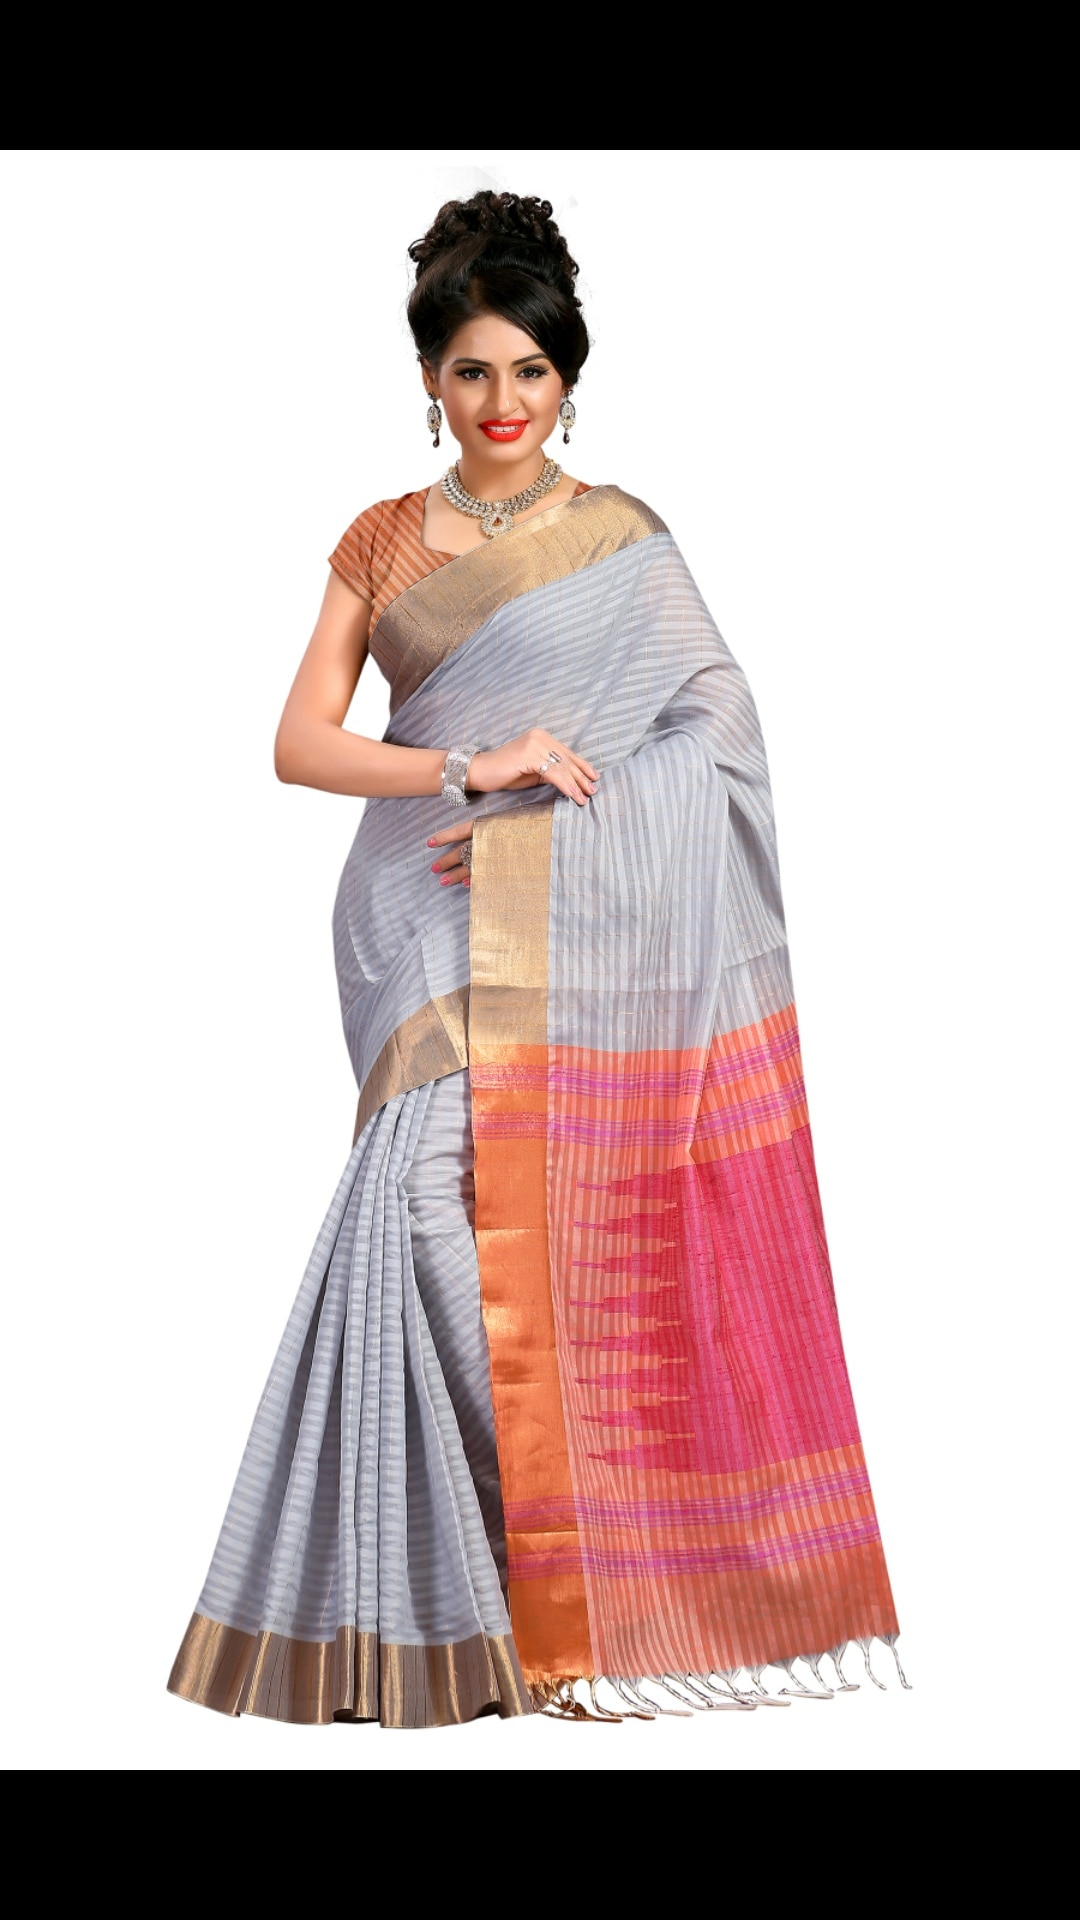 Sudarshan Silks Chikpete is a saree emporium : Sudarshan